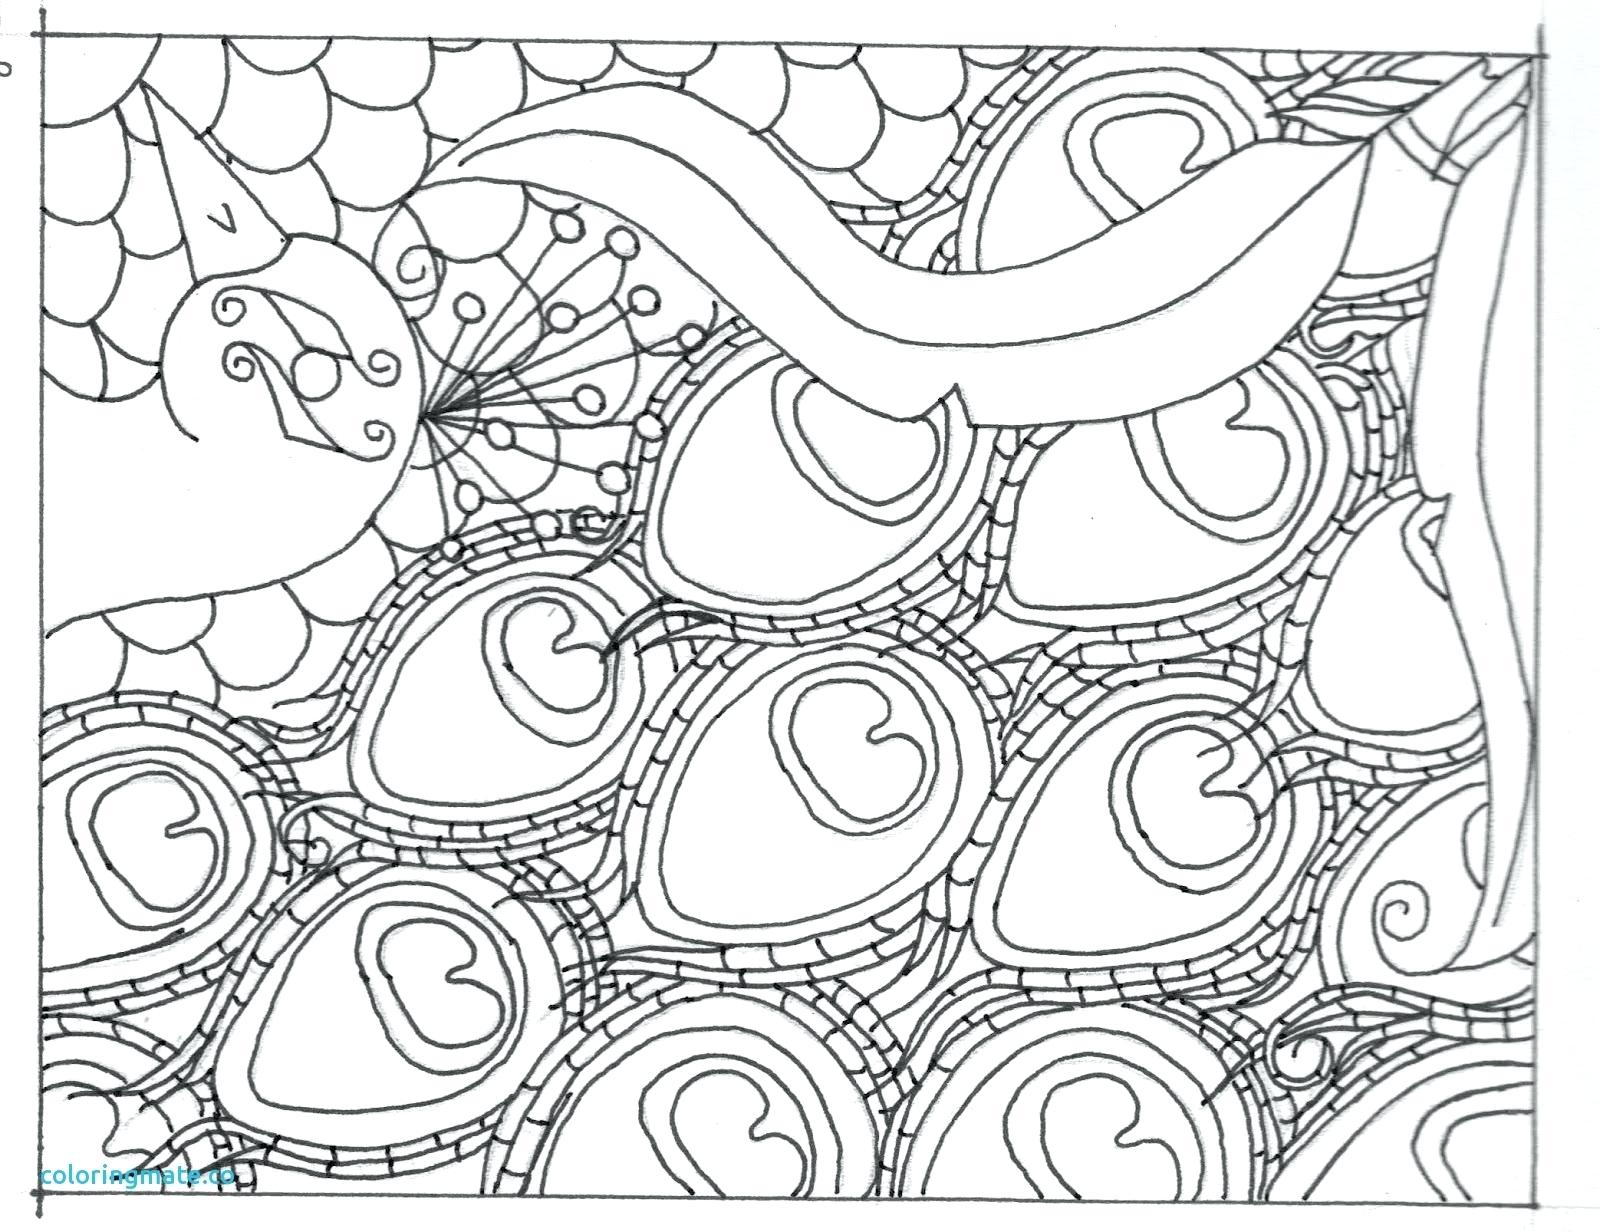 1600x1232 Coloring Peacock Coloring Pages Free Of For Drawing Page Advanced